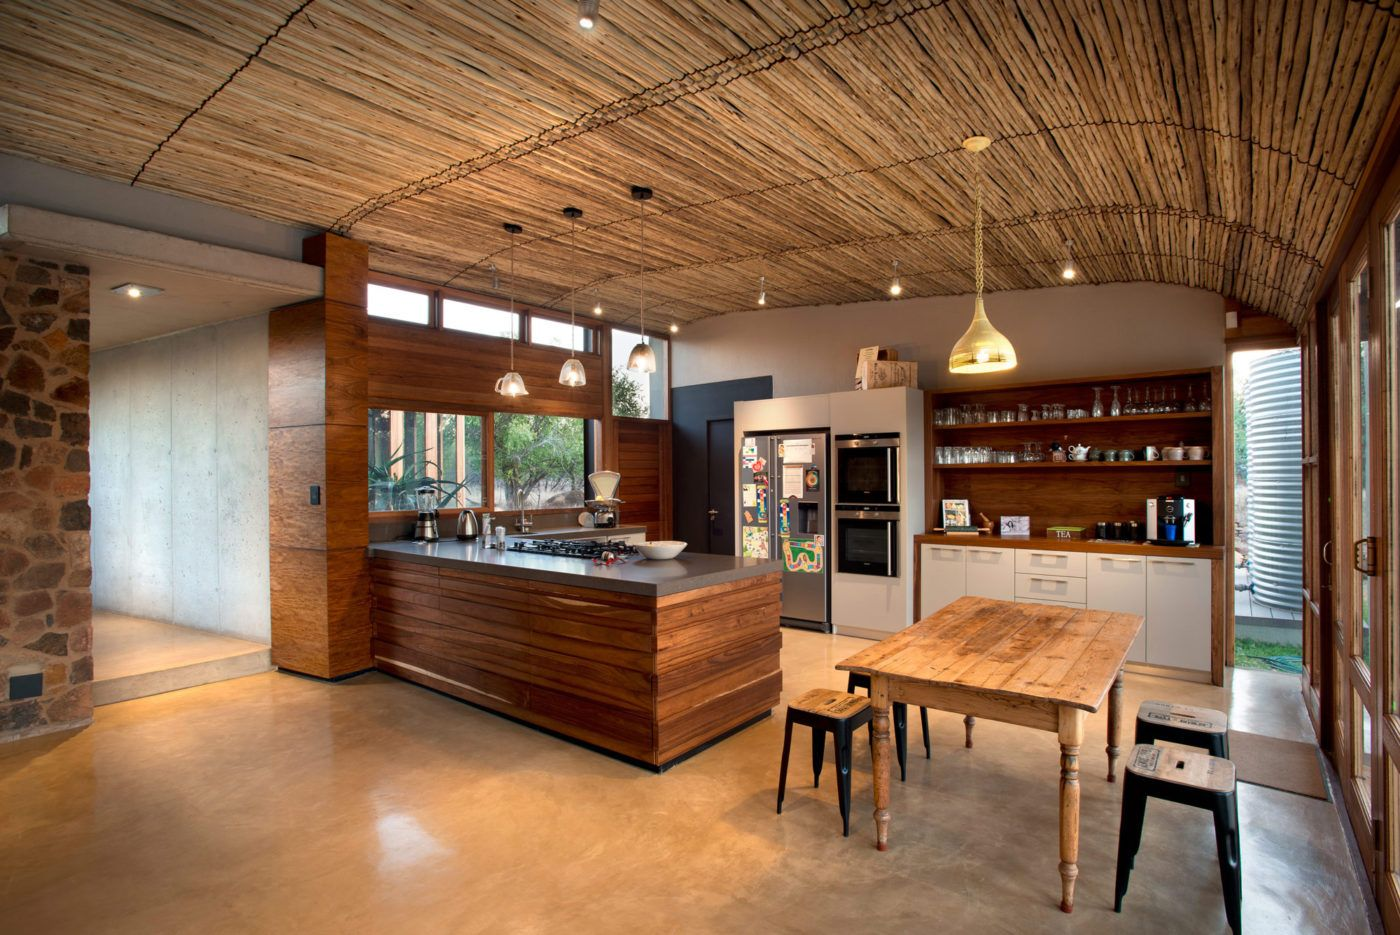 The Owner's Brief Specified An Earthy African House That's Classy South African Kitchen Designs Inspiration Design